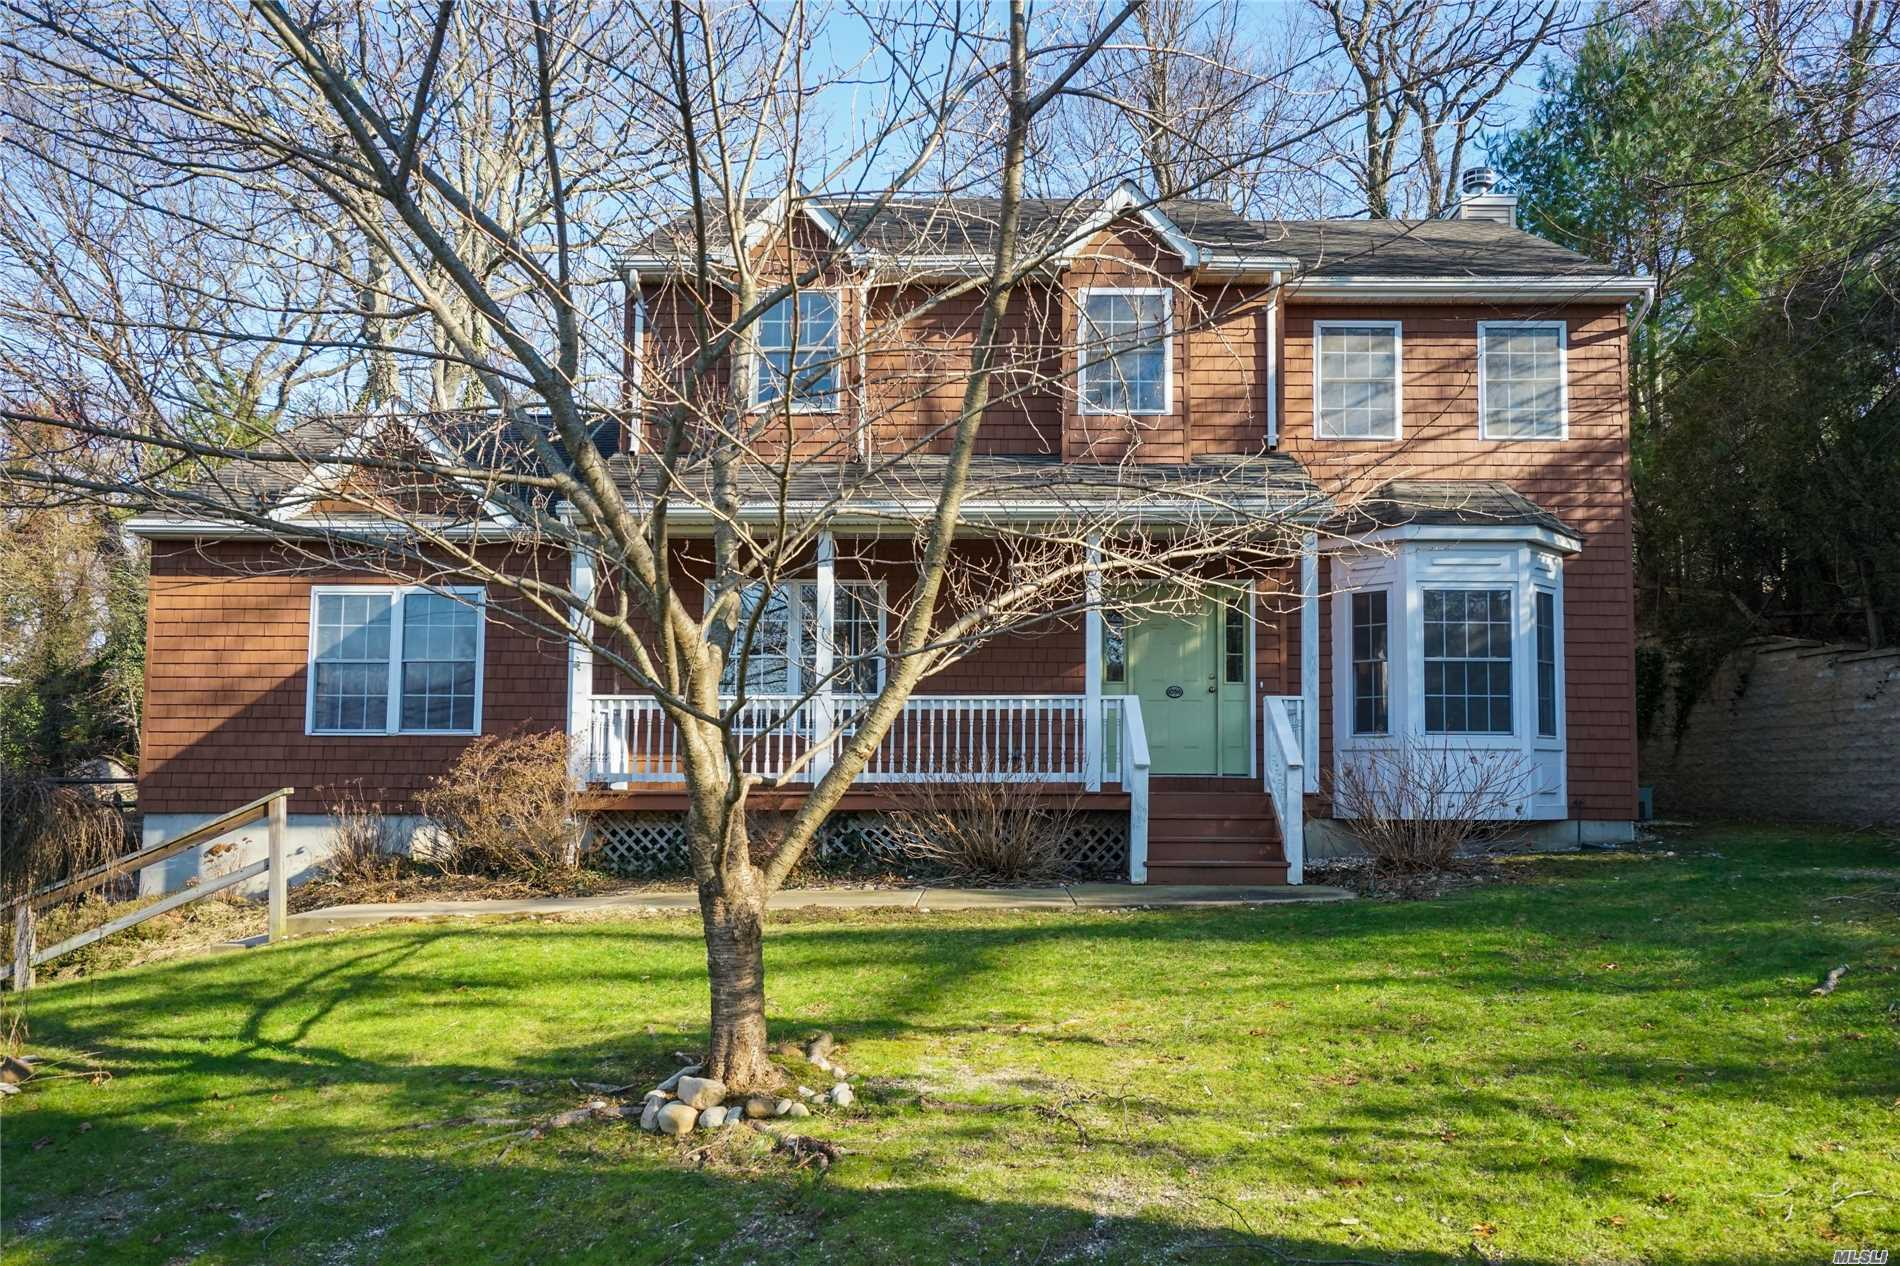 Attention To Detail In This Custom Built Colonial In Port Jeff Village. Chef's Kitchen Open To Den With Gas Fireplace. Vileroy & Boch Tiles In Bathrooms. Two Master Bedrooms And Baths - One On First Floor. Custom Moldings. Hardwood Floors. Cac. Gas Line For Bbq In Back. Sound System Inside And To Backyard. Famed Port Jefferson Schools!